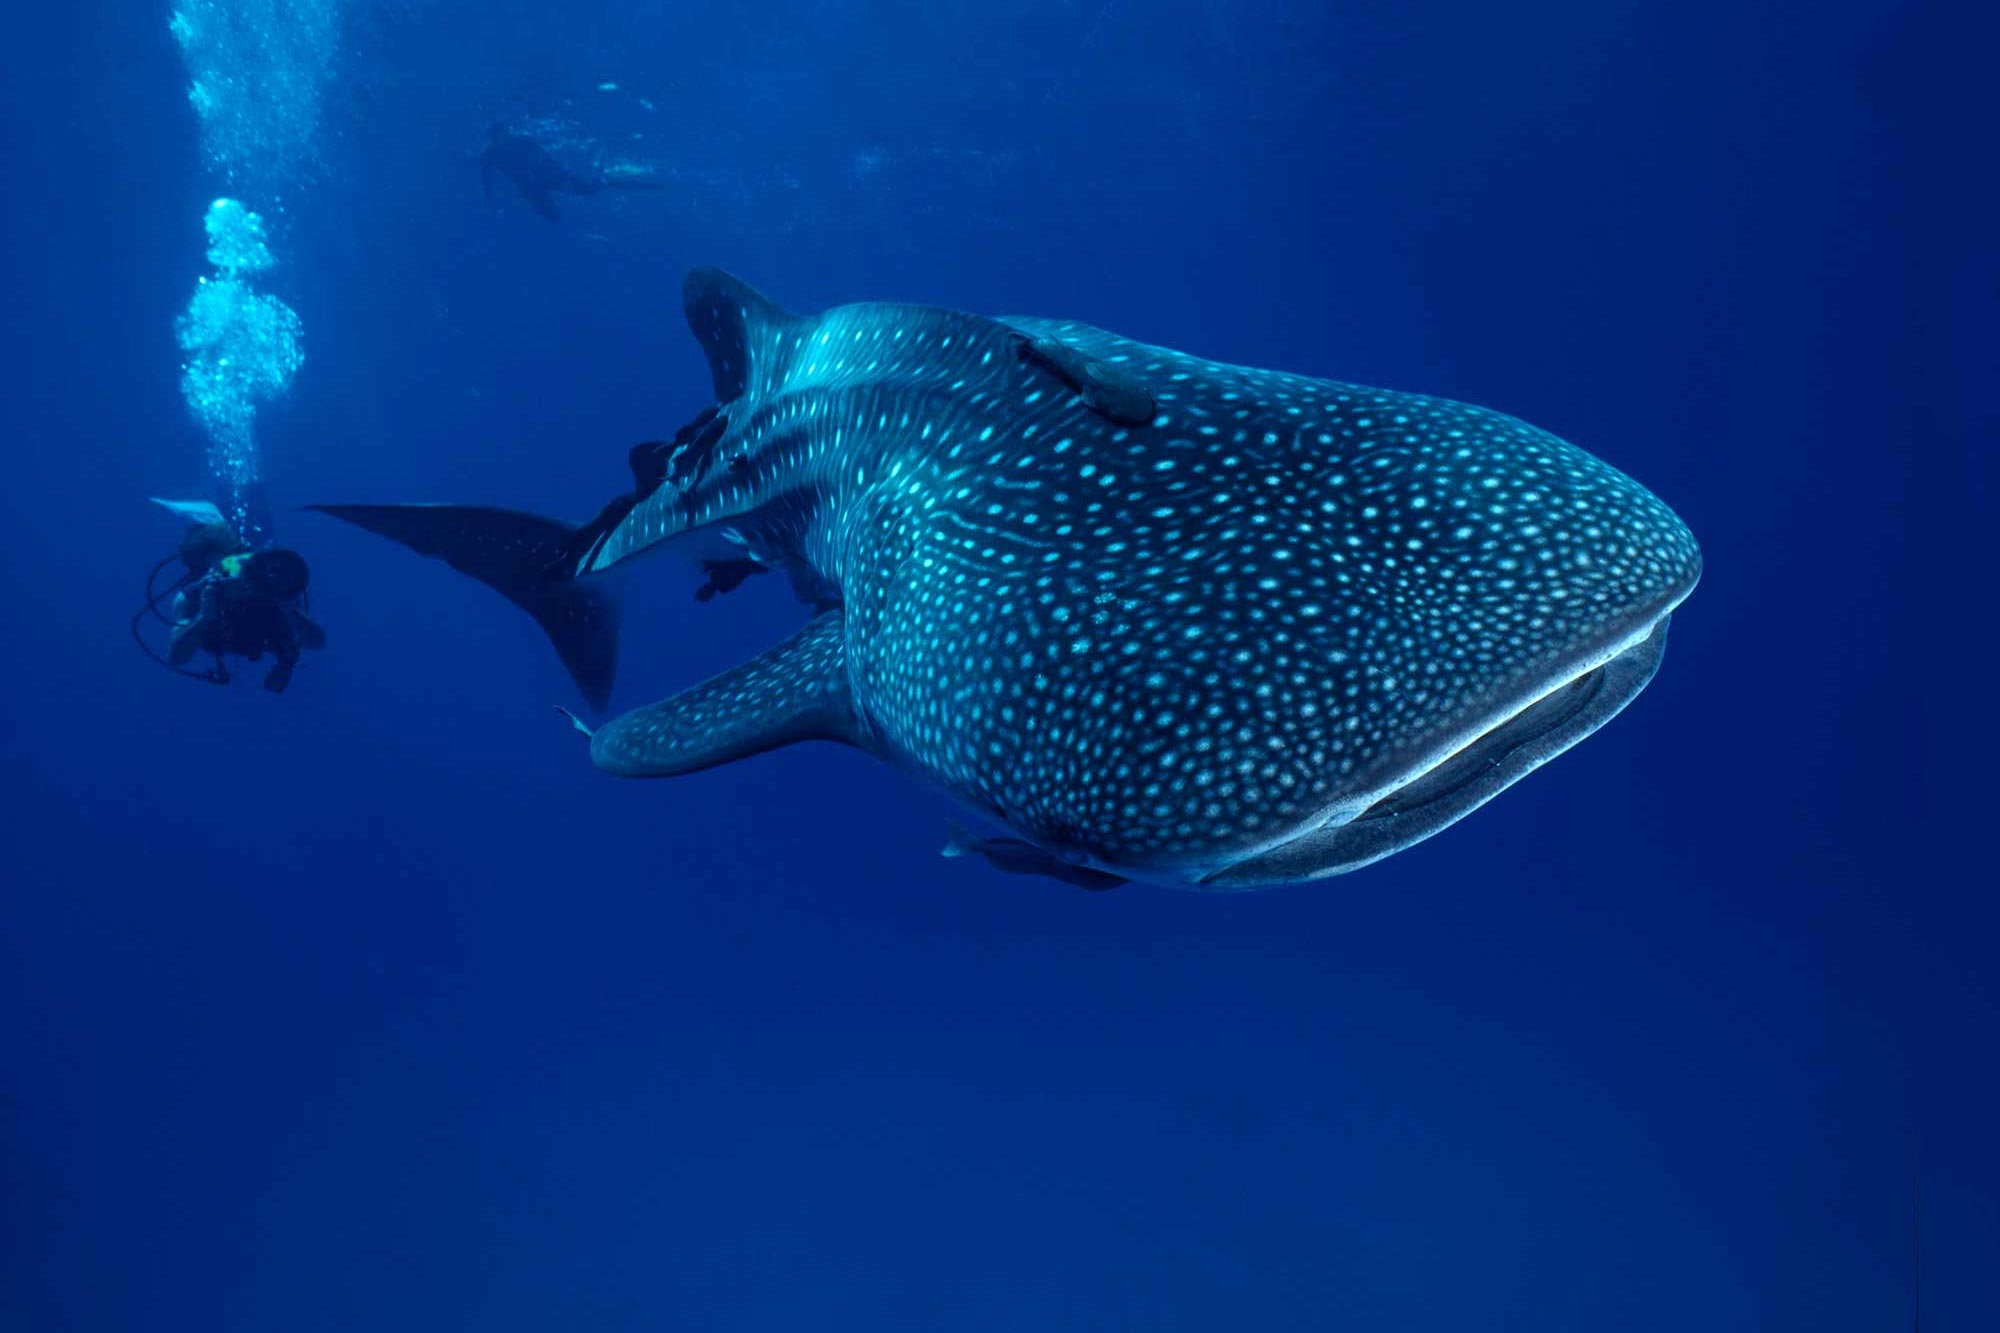 Whale Shark Girls Overtake the Boys to Become World's Largest Fish - SciTechDaily